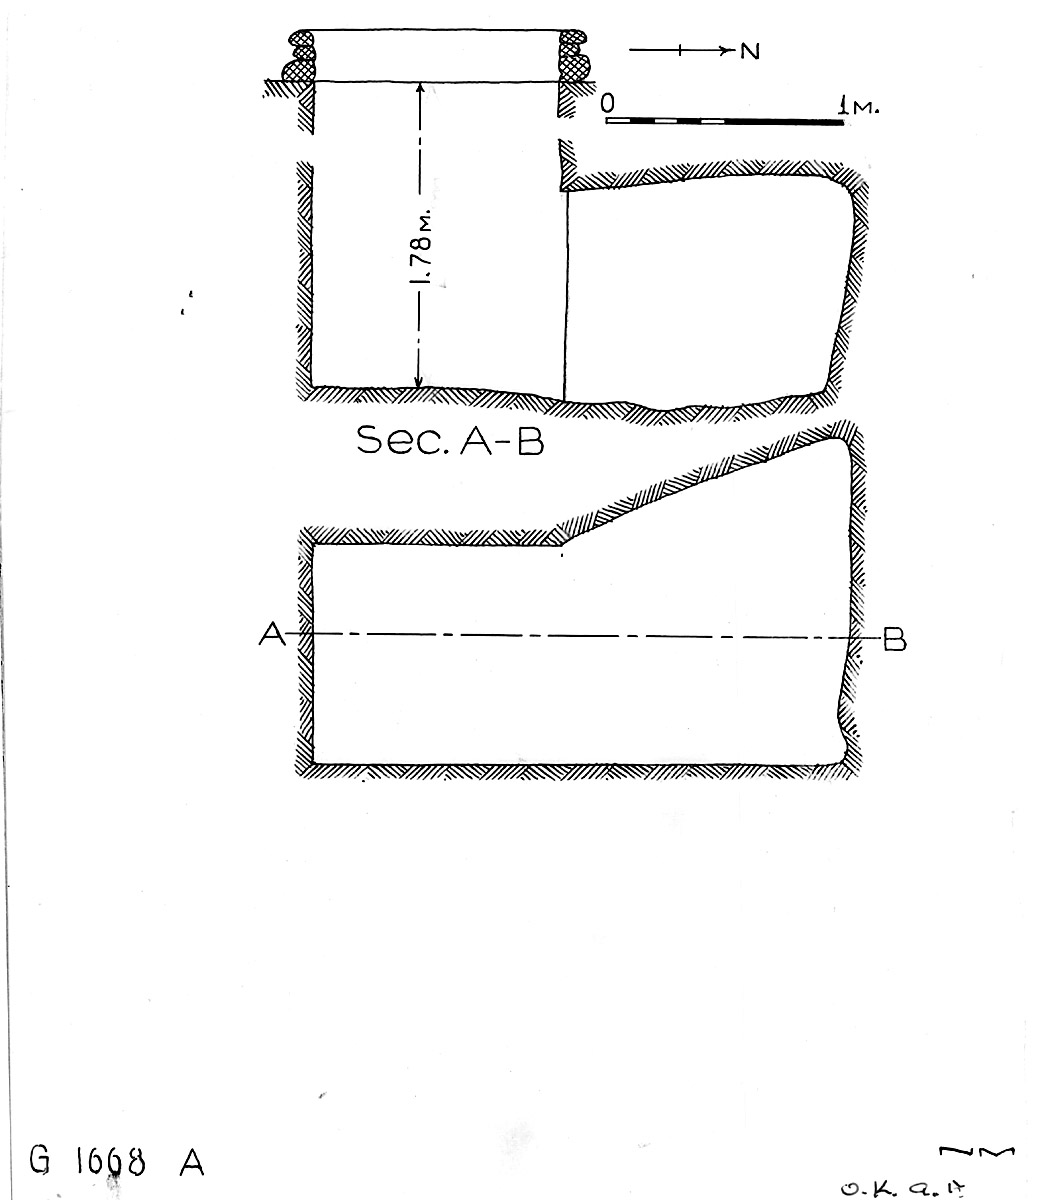 Maps and plans: G 1668, Shaft A